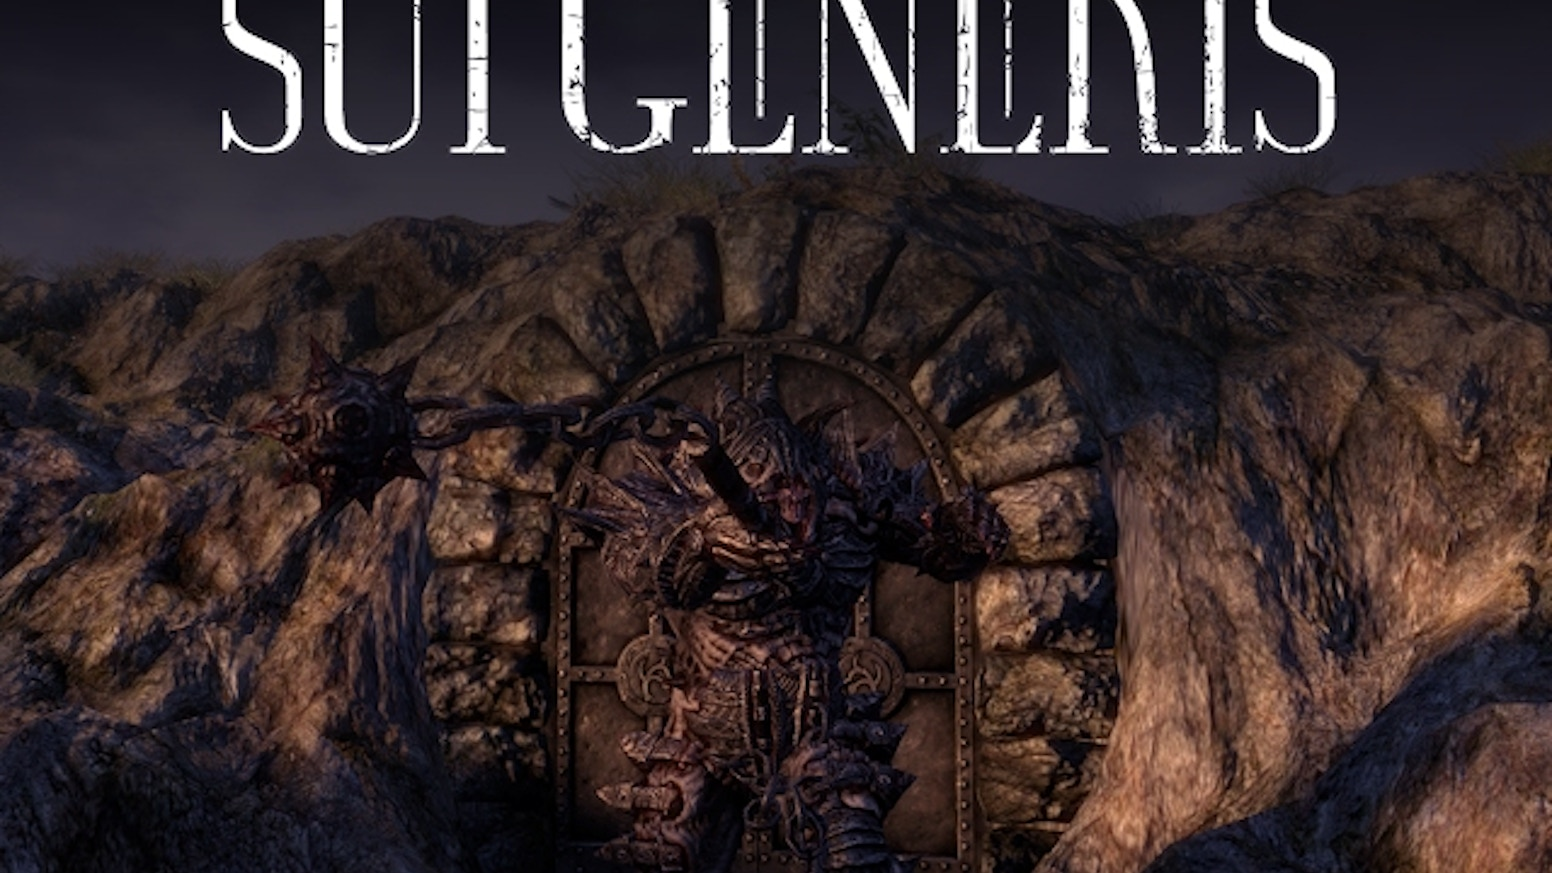 Sui Generis is an original open world RPG for the PC featuring dynamic story and physics based gameplay.